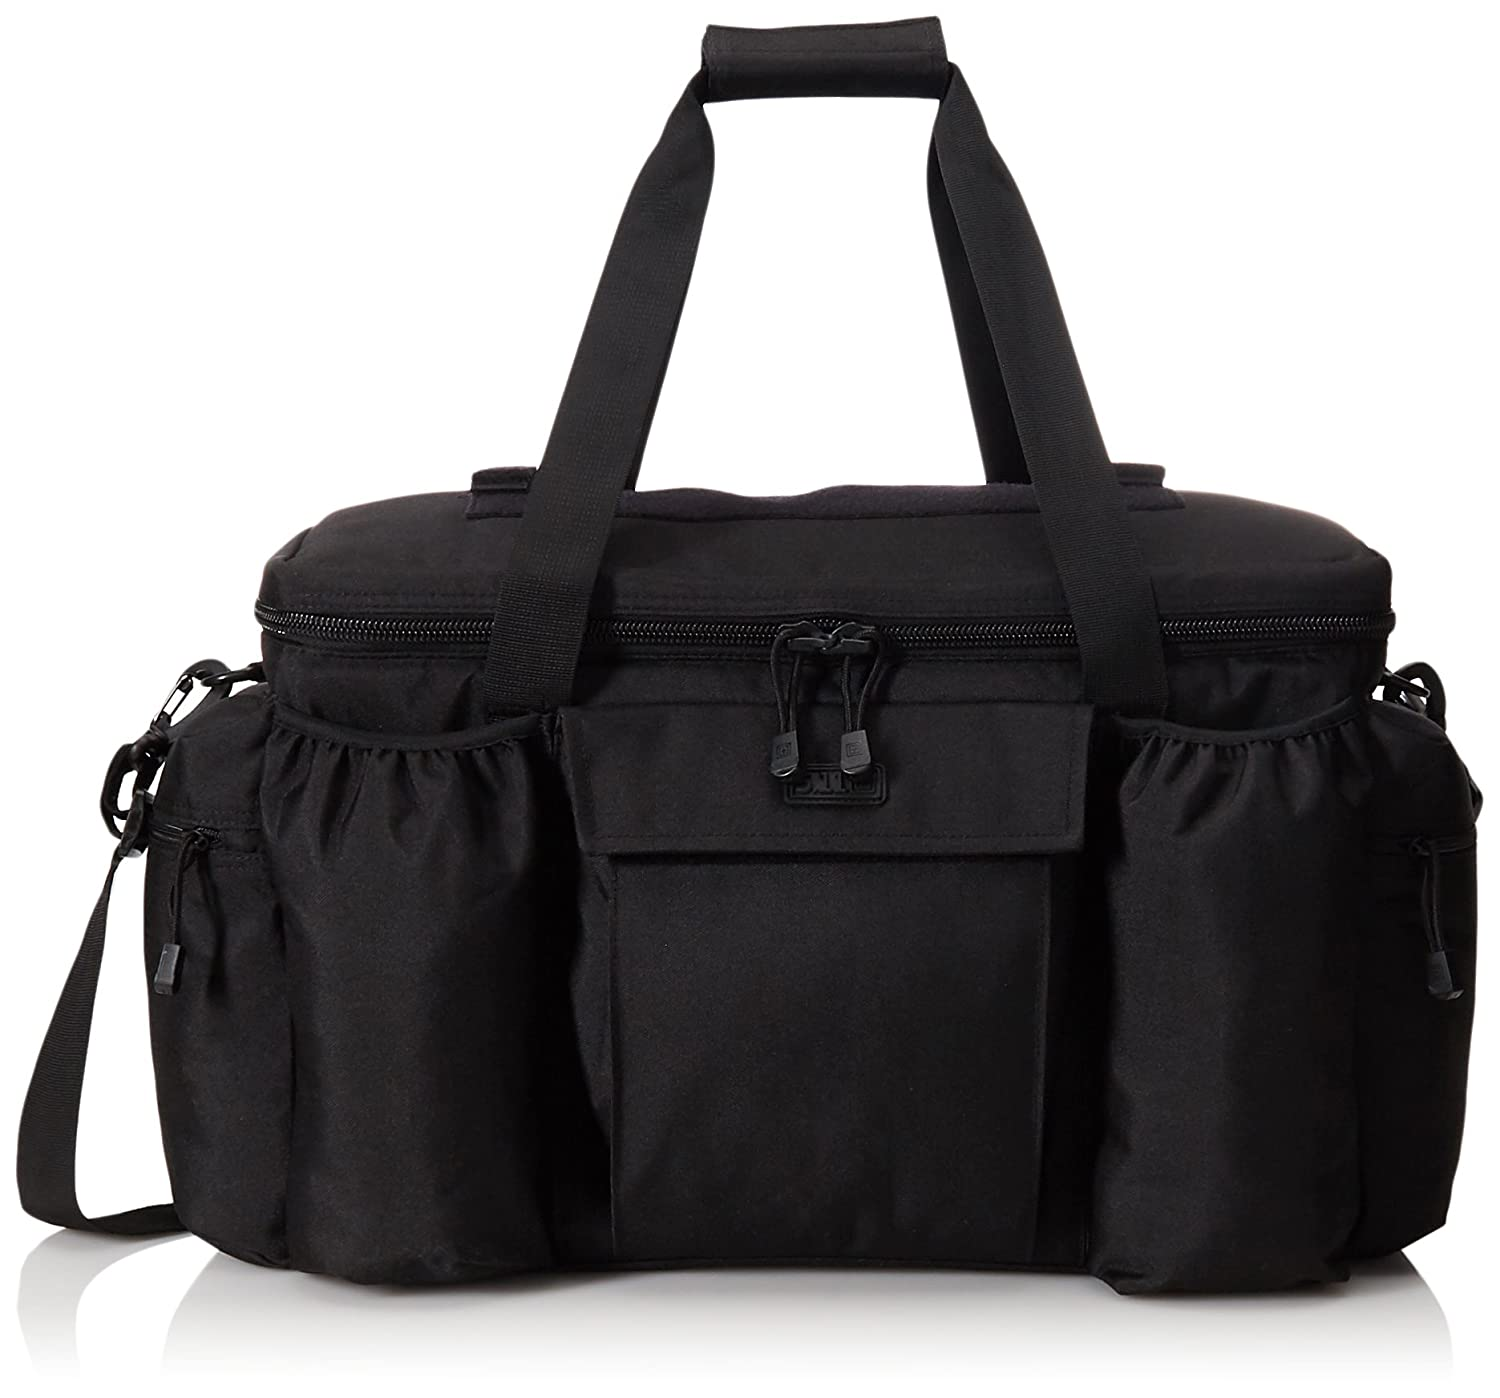 be9f83a42e7 5.11 Patrol Ready Duty Bag for Police Law Enforcement Security, Style  59012, Black